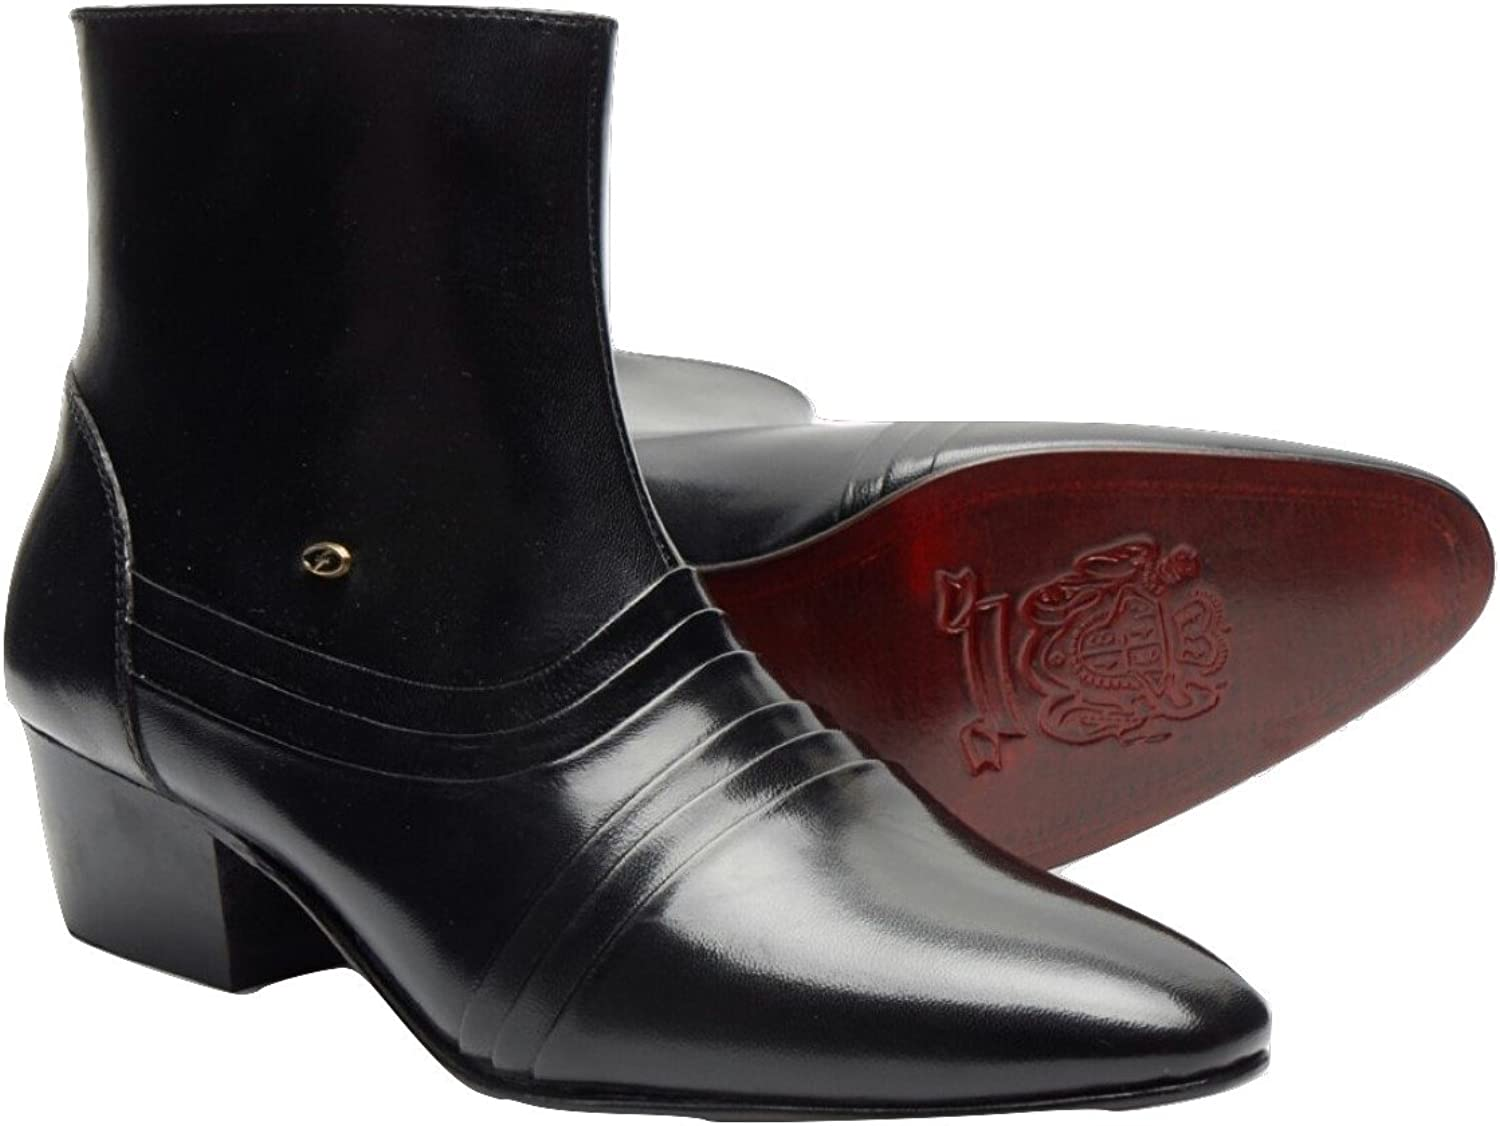 Lucini Ankle Boots Heel Men Leather Black Wedding Office